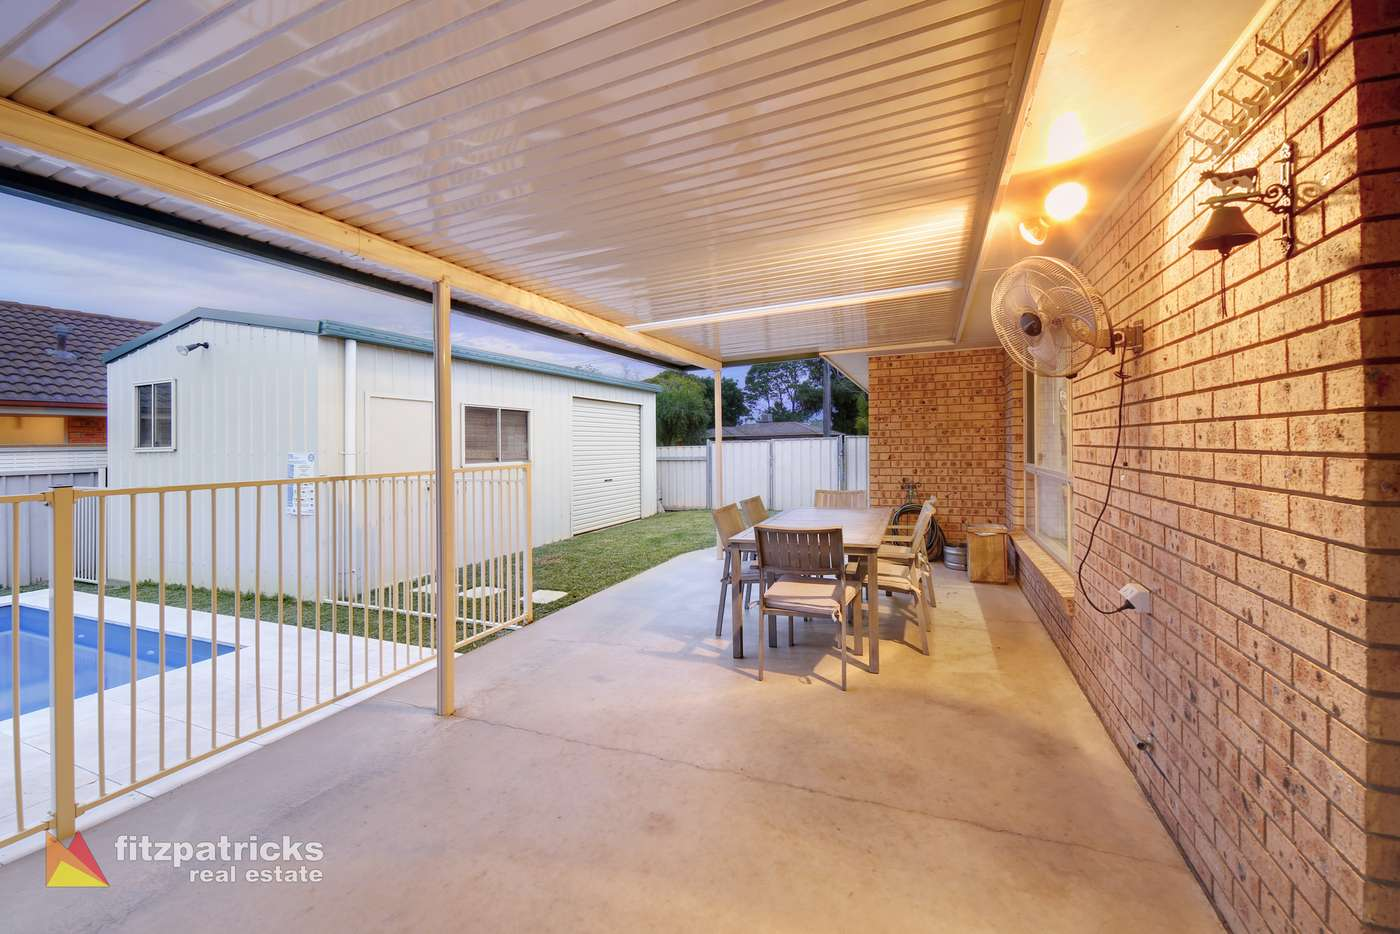 Sixth view of Homely house listing, 4 Hurd Street, Ashmont NSW 2650